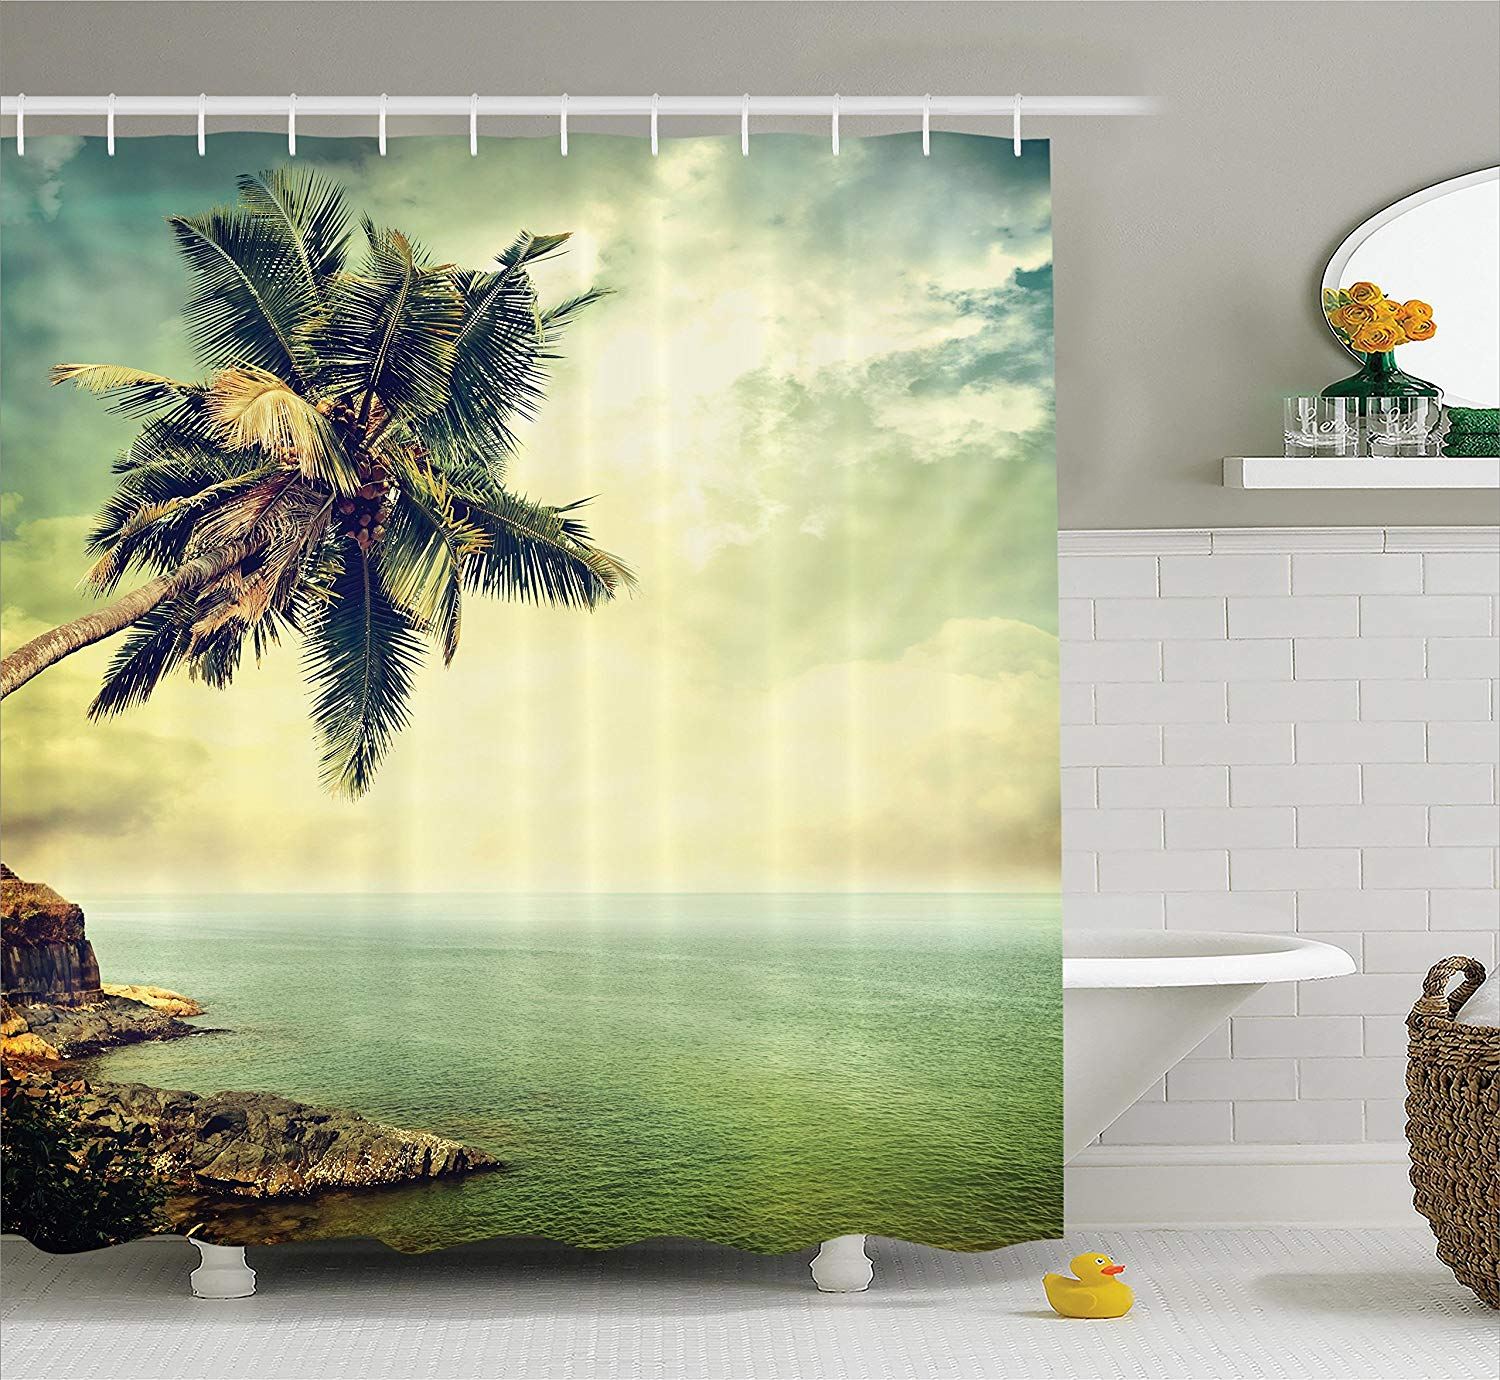 Beach Hawaiian Decor, Palm Tree Rocky Shore Caribbean Mist Honeymoon Traveling Resort Scenic Sun Rays Image, shower curtain image